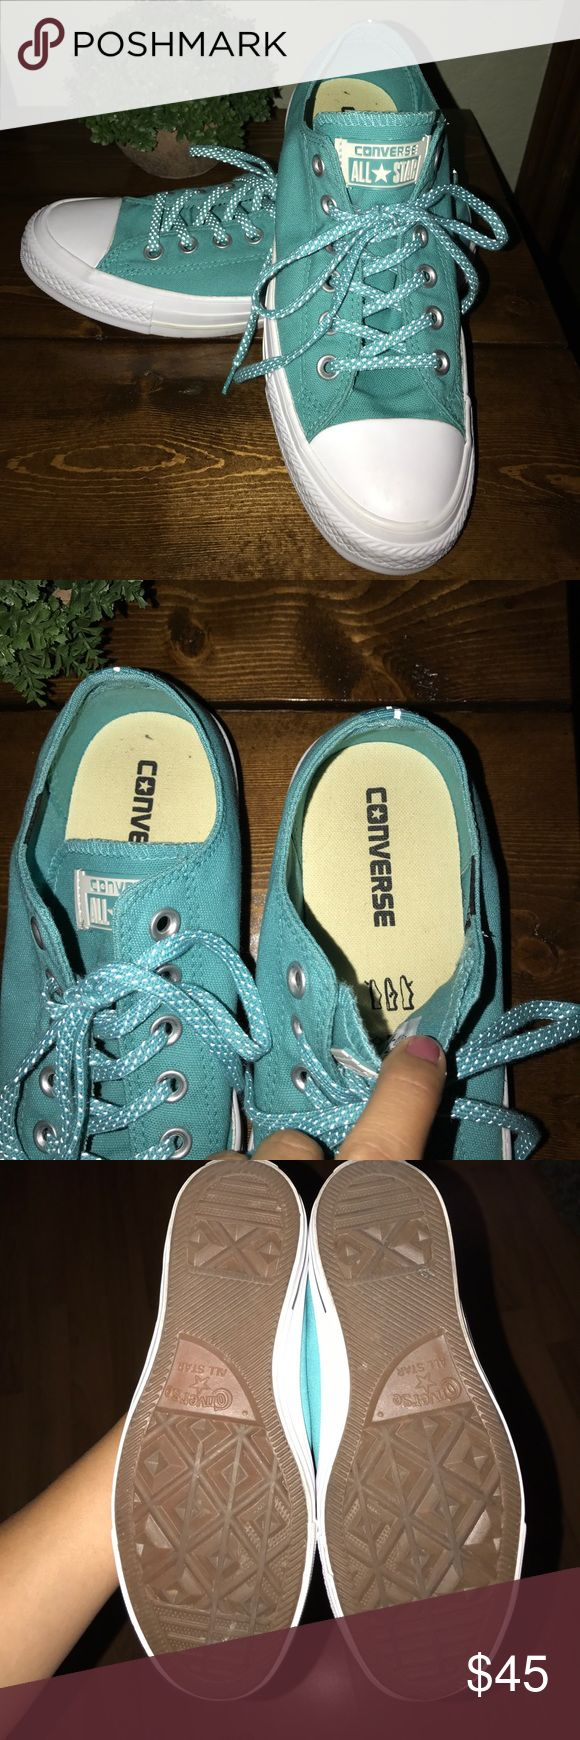 Turquoise unisex converse chucks Worn once to a Spurs game!!! Went great with the old school spurs colors pink and turquoise shirt!!!! Converse Shoes Sneakers